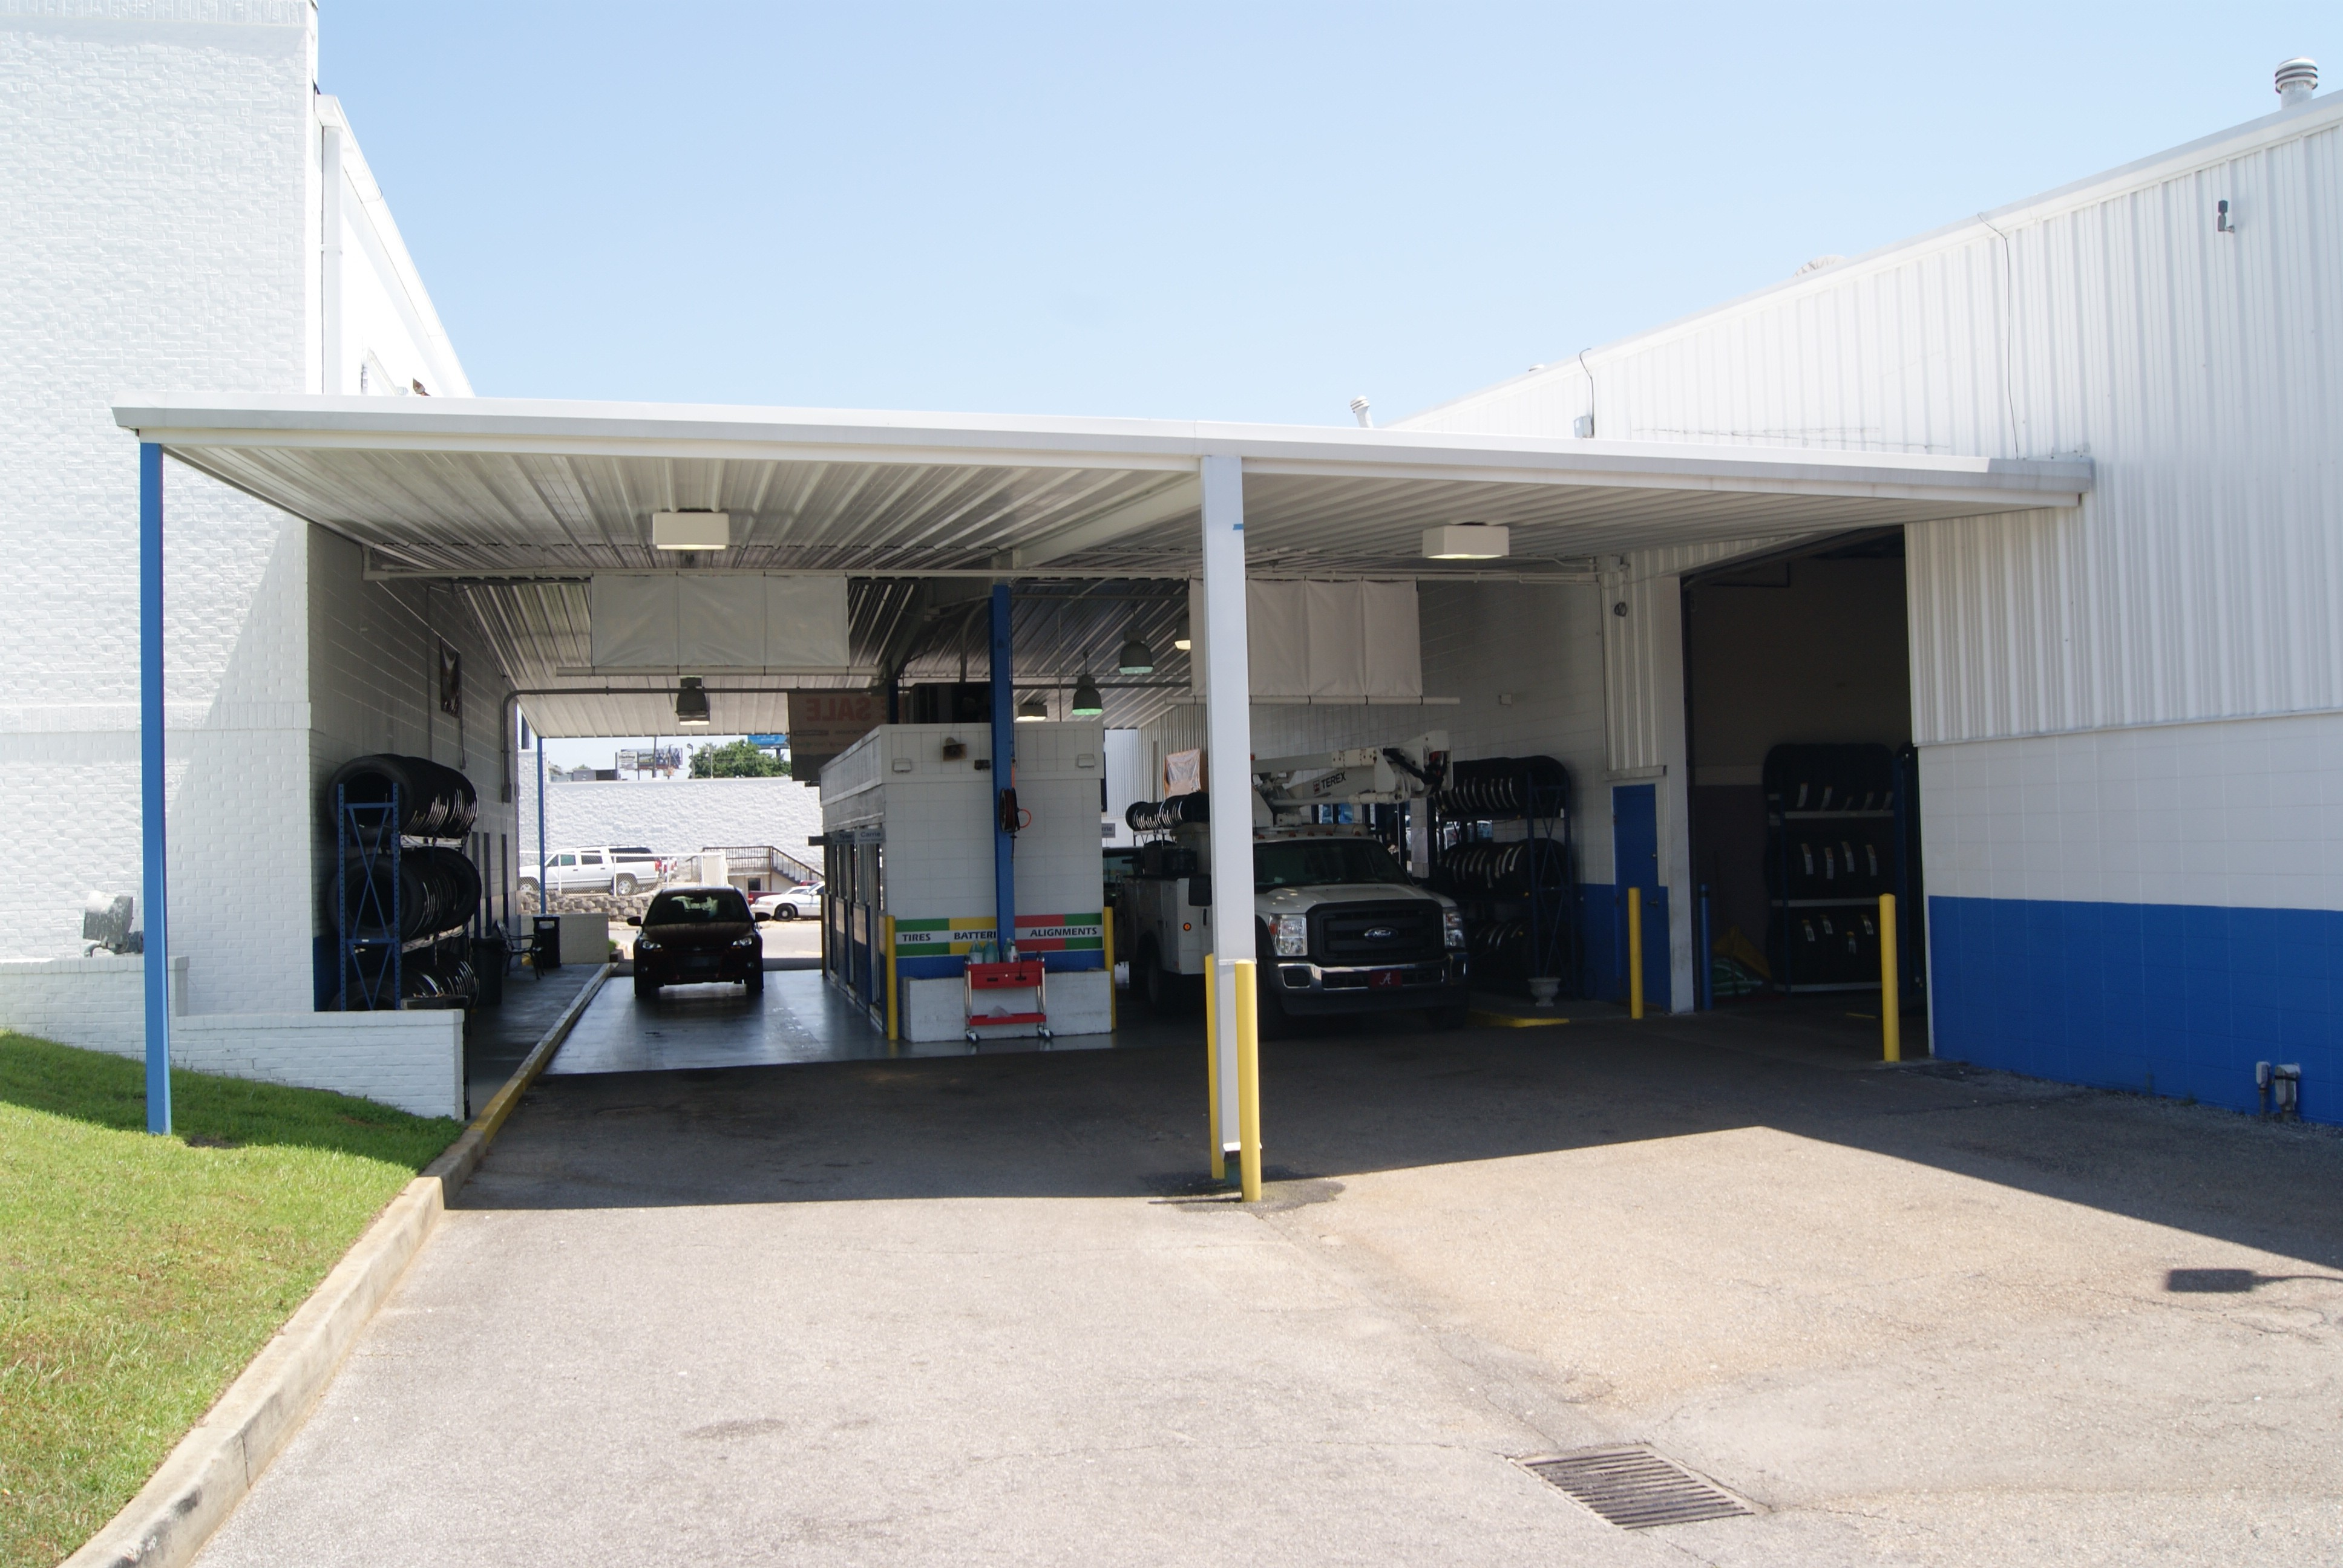 ford service center ford repairs maintenance in mobile al. Black Bedroom Furniture Sets. Home Design Ideas